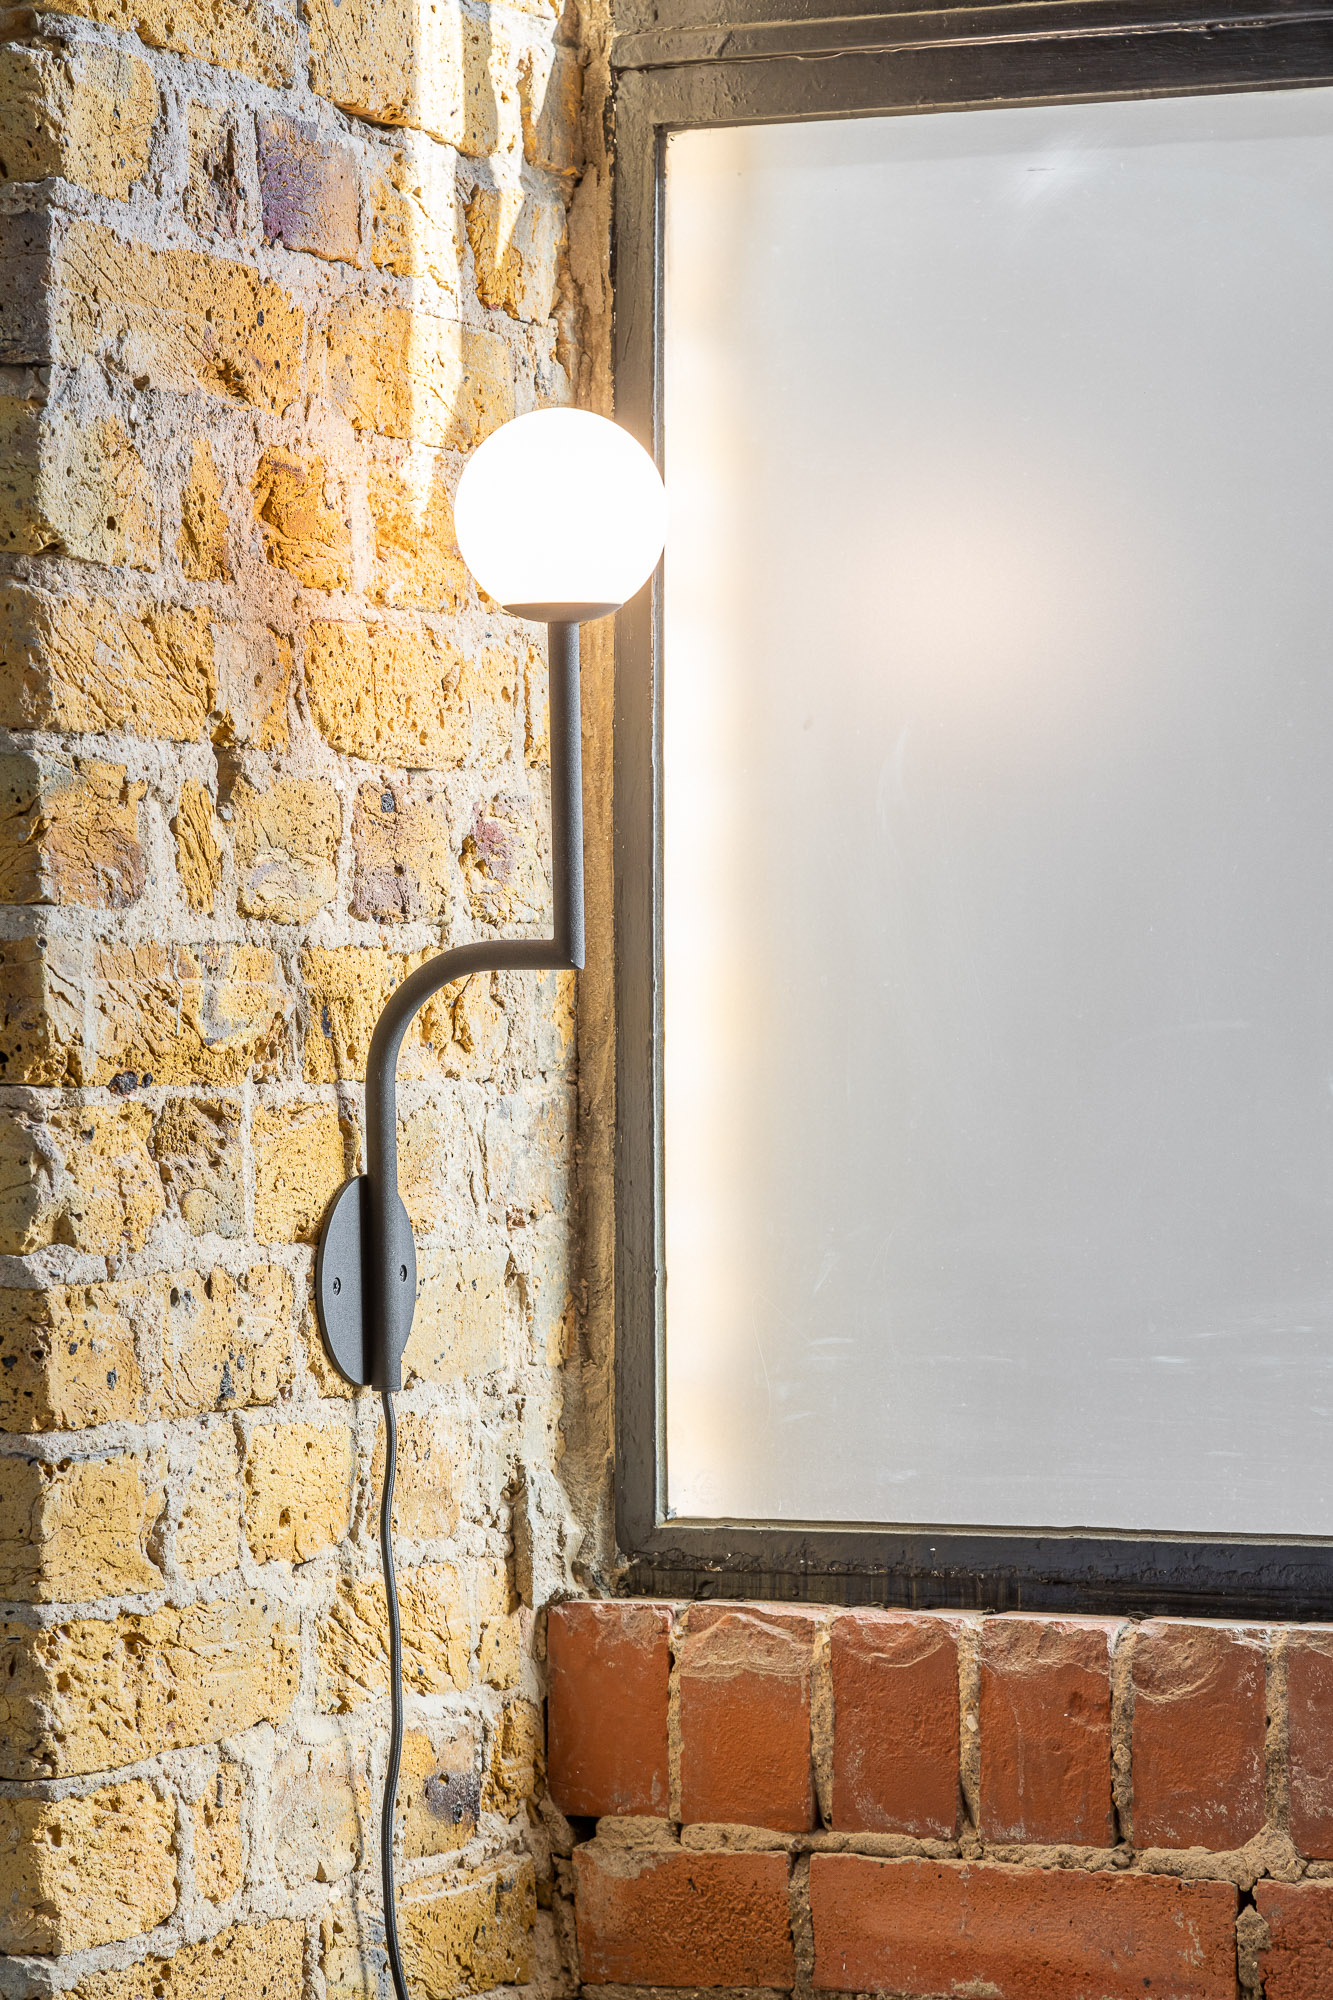 jonathan bond, interior photographer, hanging wall light by window, made with love, london